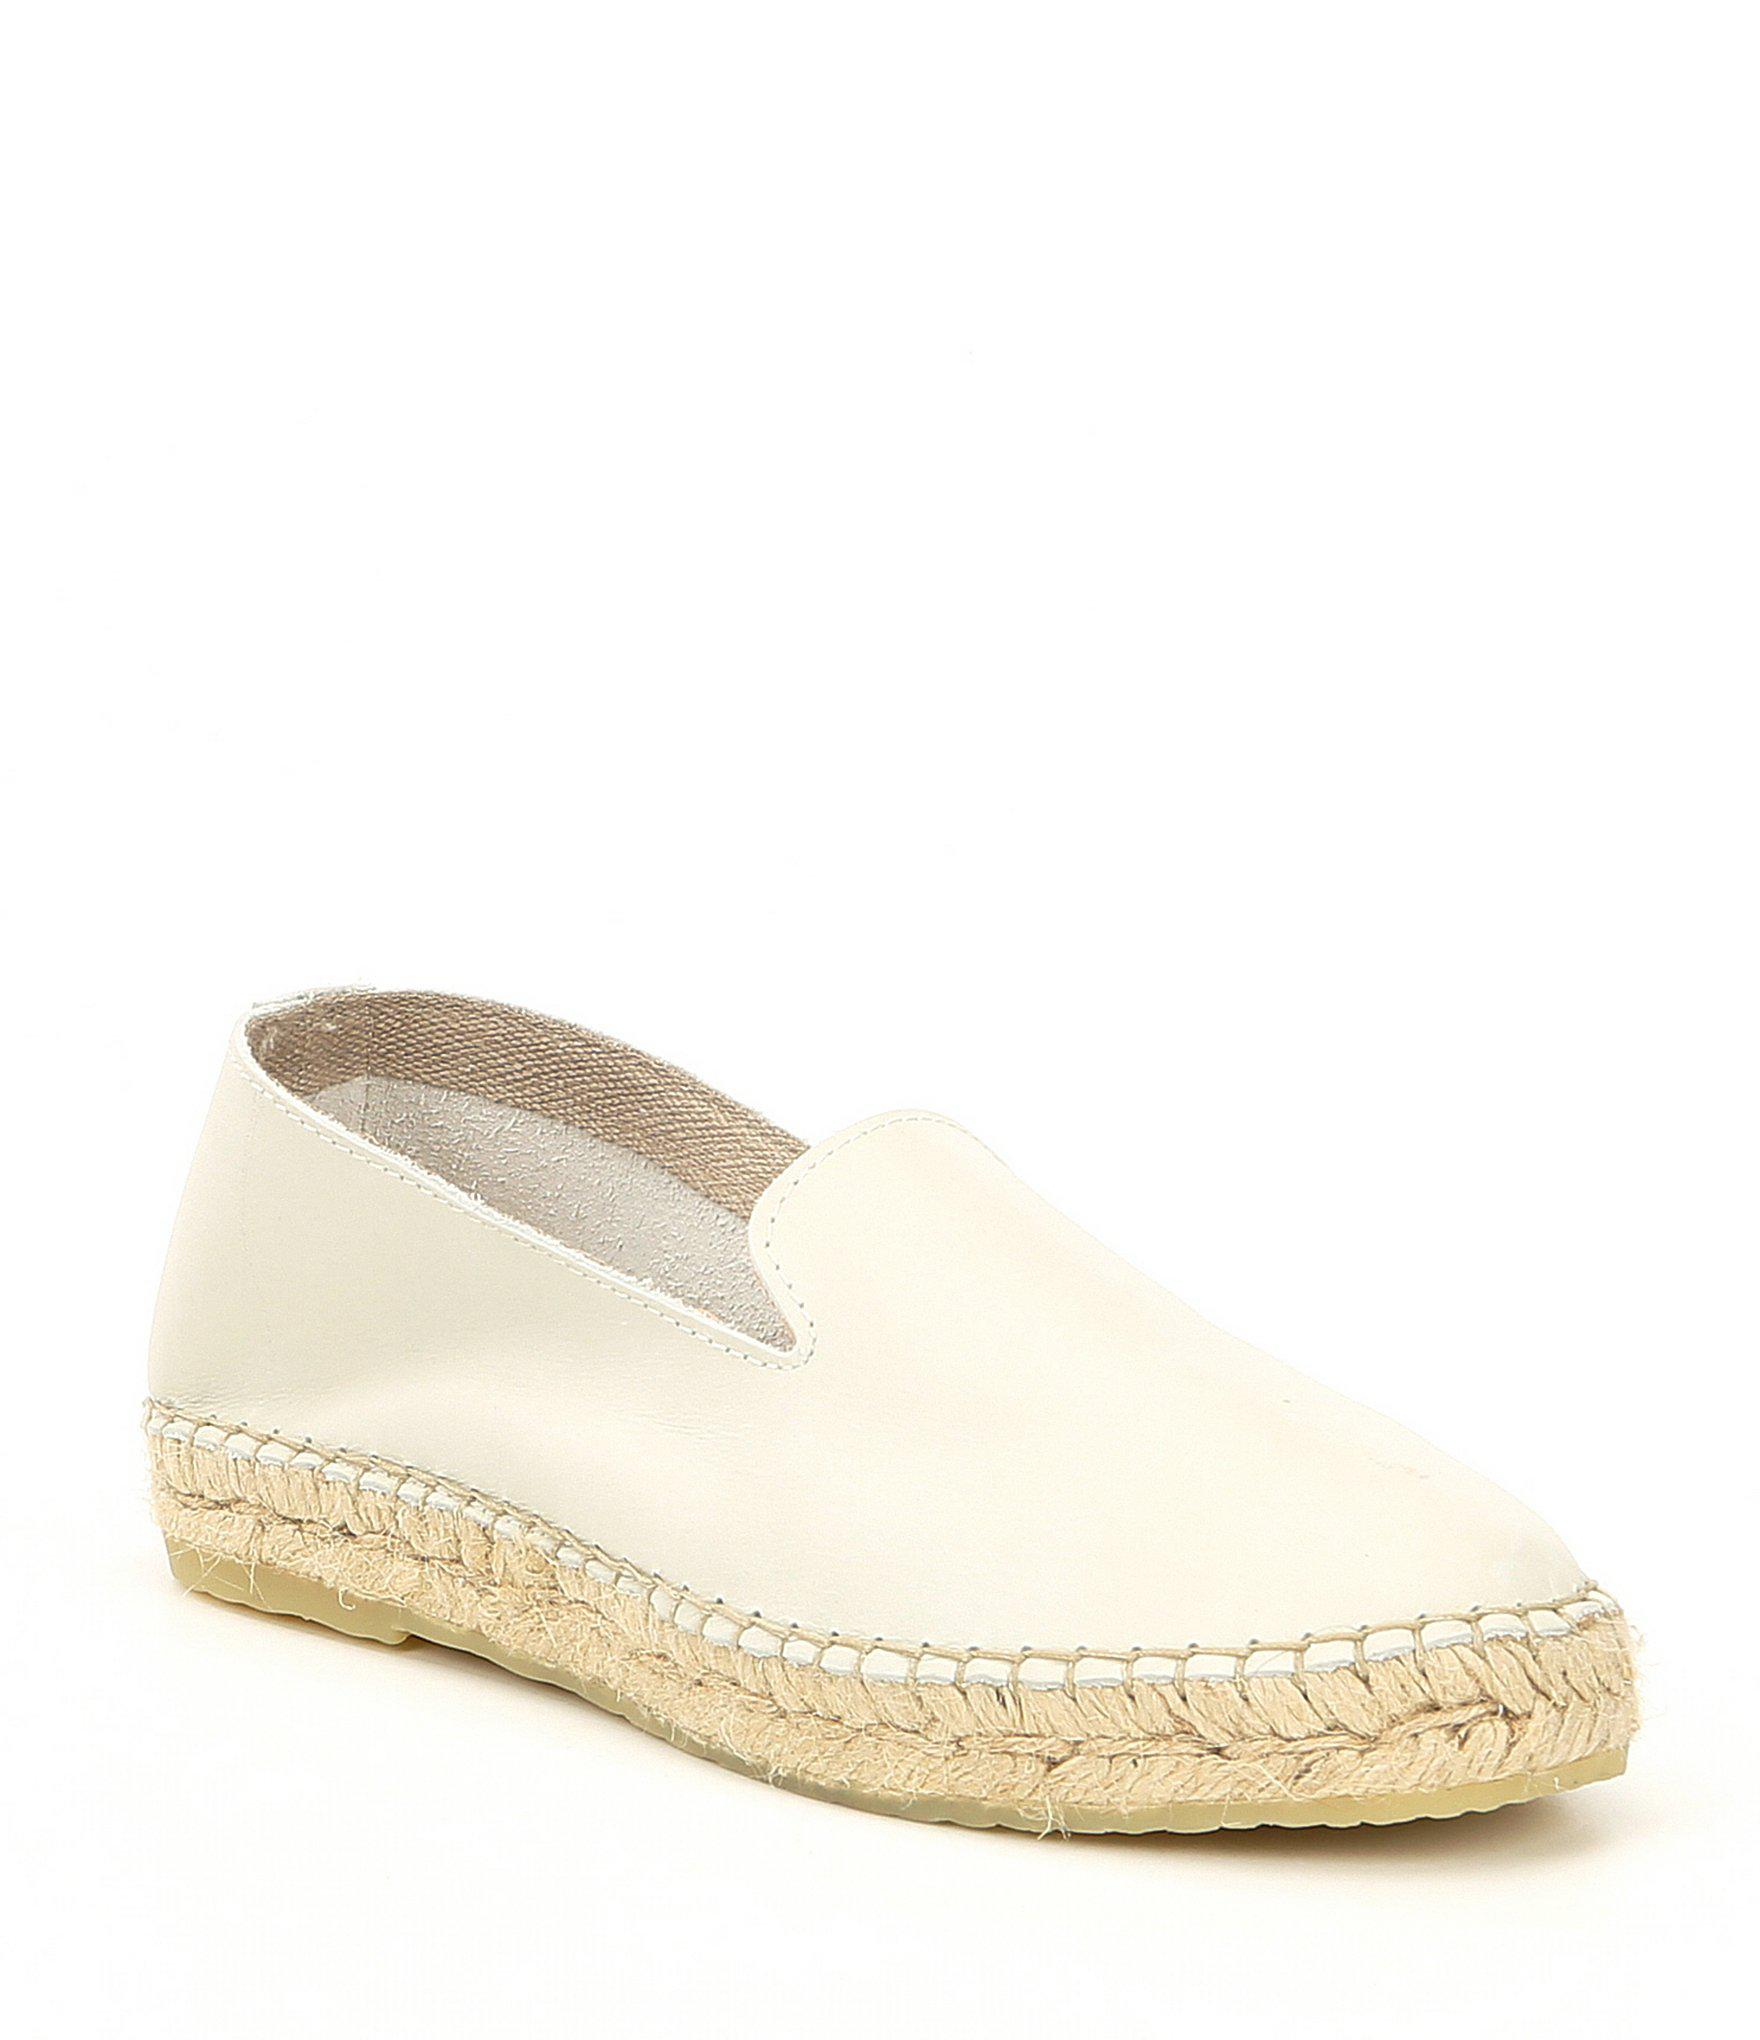 873e098993c67 Lyst - Free People Laurel Canyon Espadrilles in White